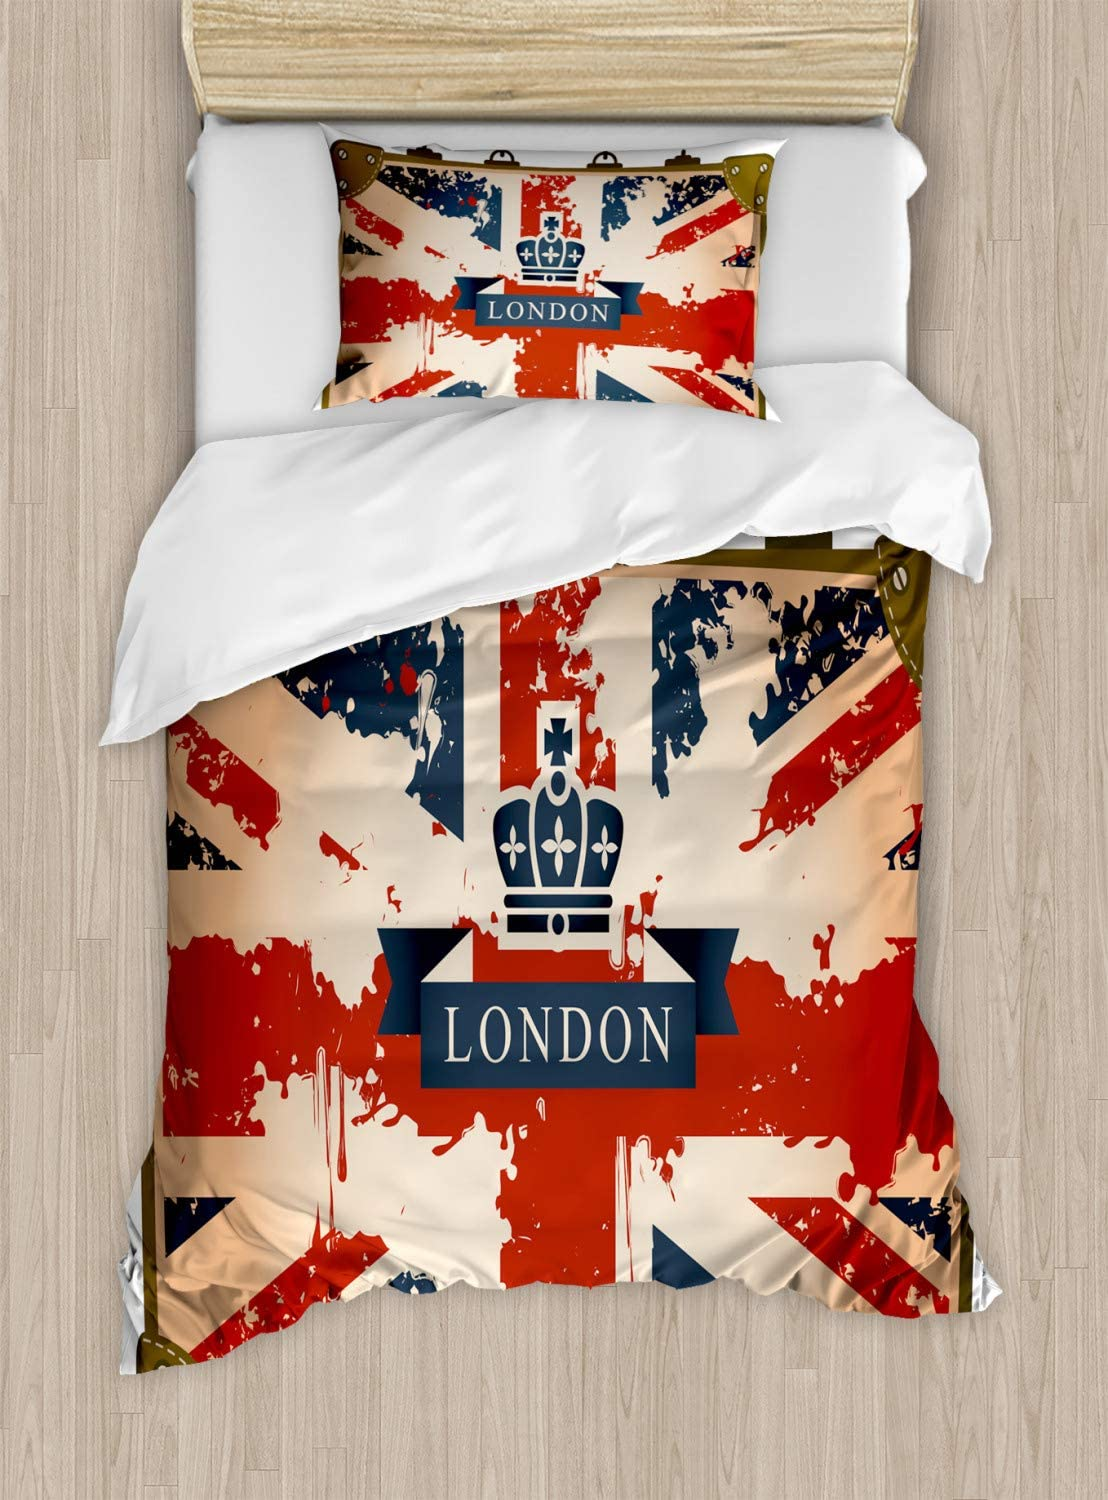 Ambesonne Union Jack Duvet Cover Set, Vintage Travel Suitcase with British Flag London Ribbon and Crown Image, Decorative 2 Piece Bedding Set with 1 Pillow Sham, Twin Size, Blue Brown